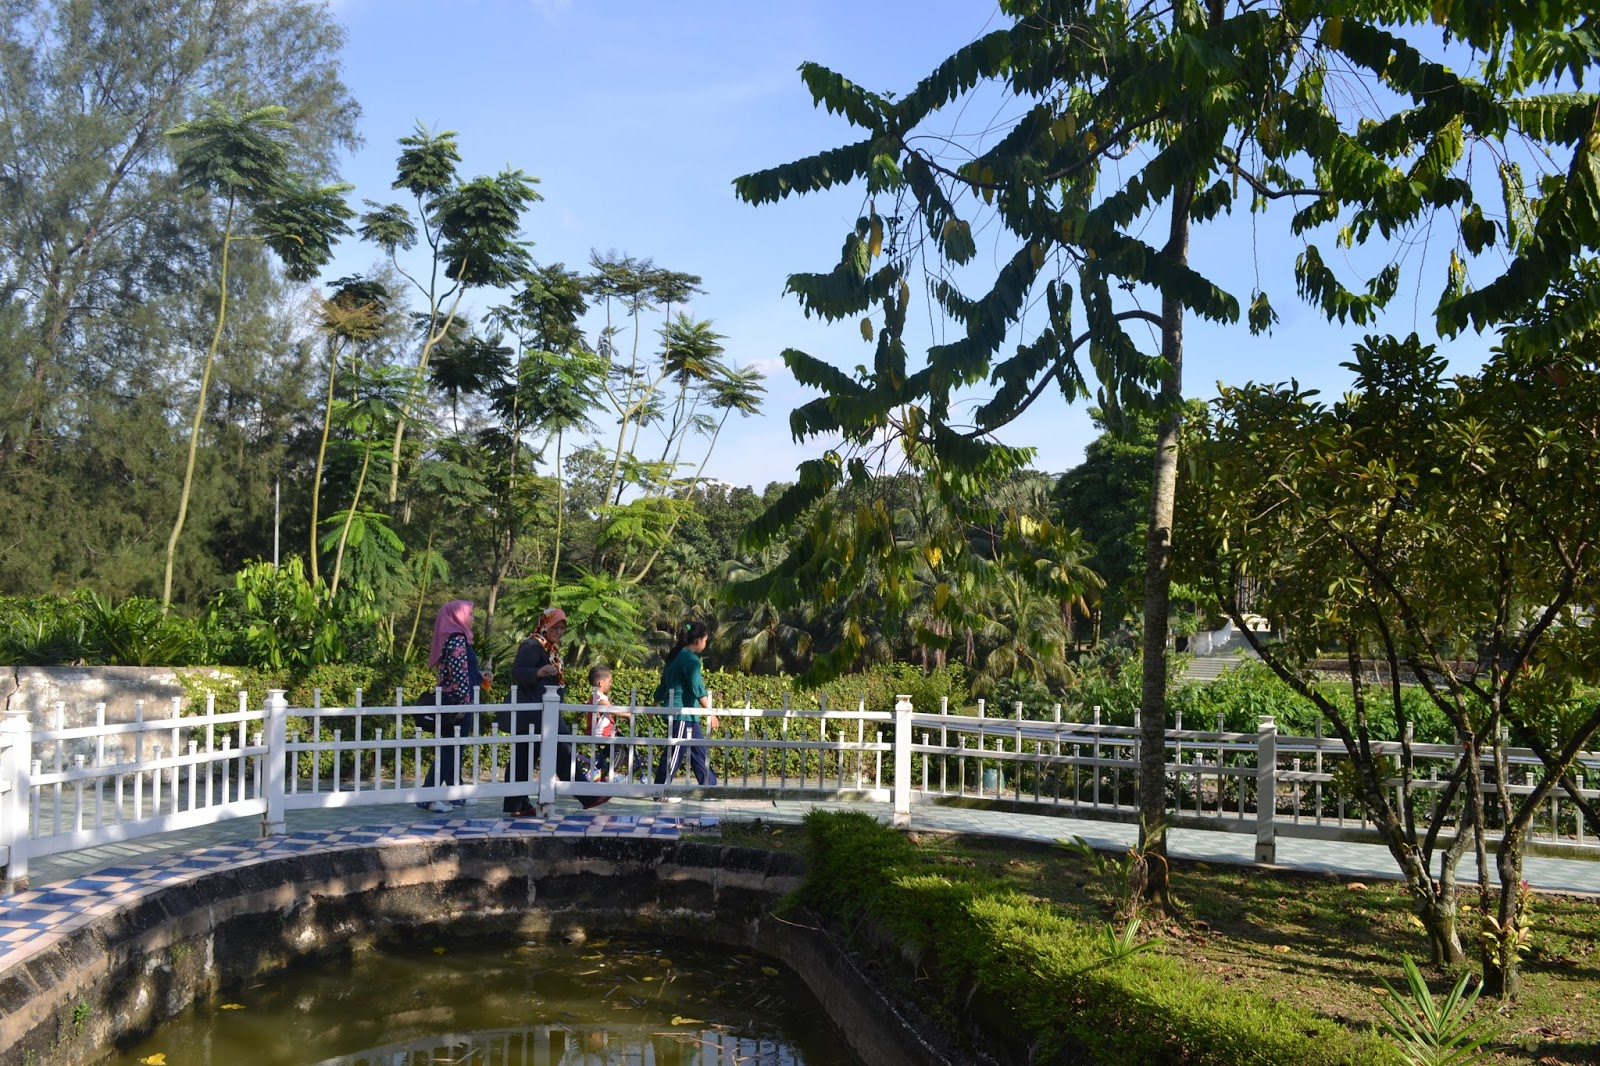 Lush green trees fill this area so you'll have plenty of shade and oxygen!